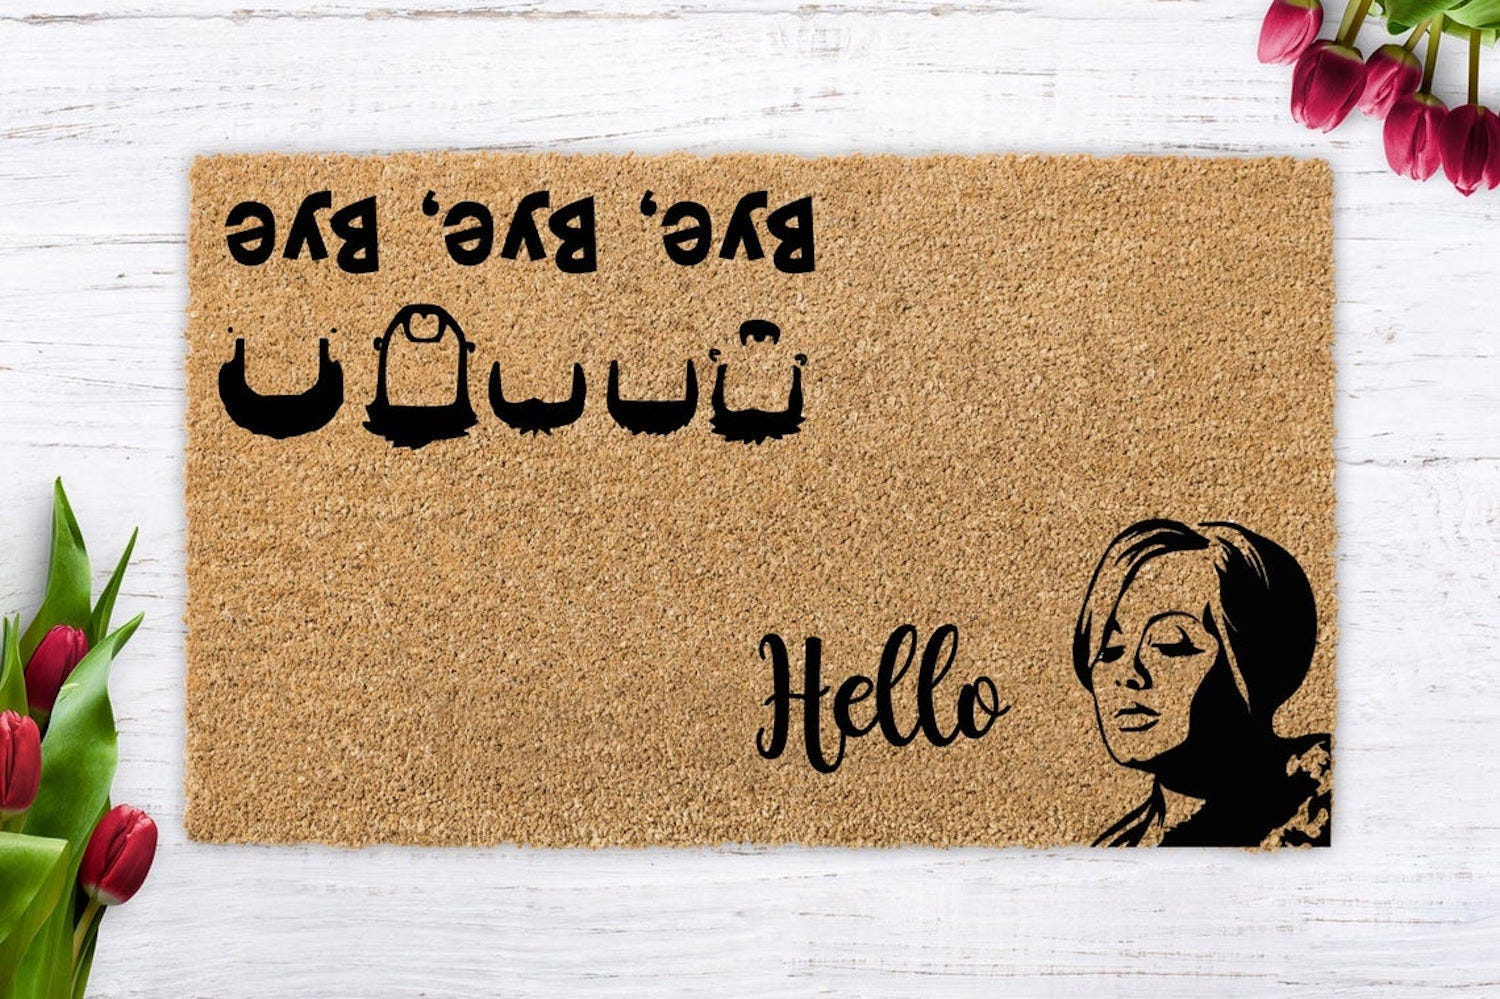 """Doormat saying """"Hello"""" with an Adele silhouette facing one way and """"Bye Bye Bye"""" with NSYNC silhouettes the other way"""